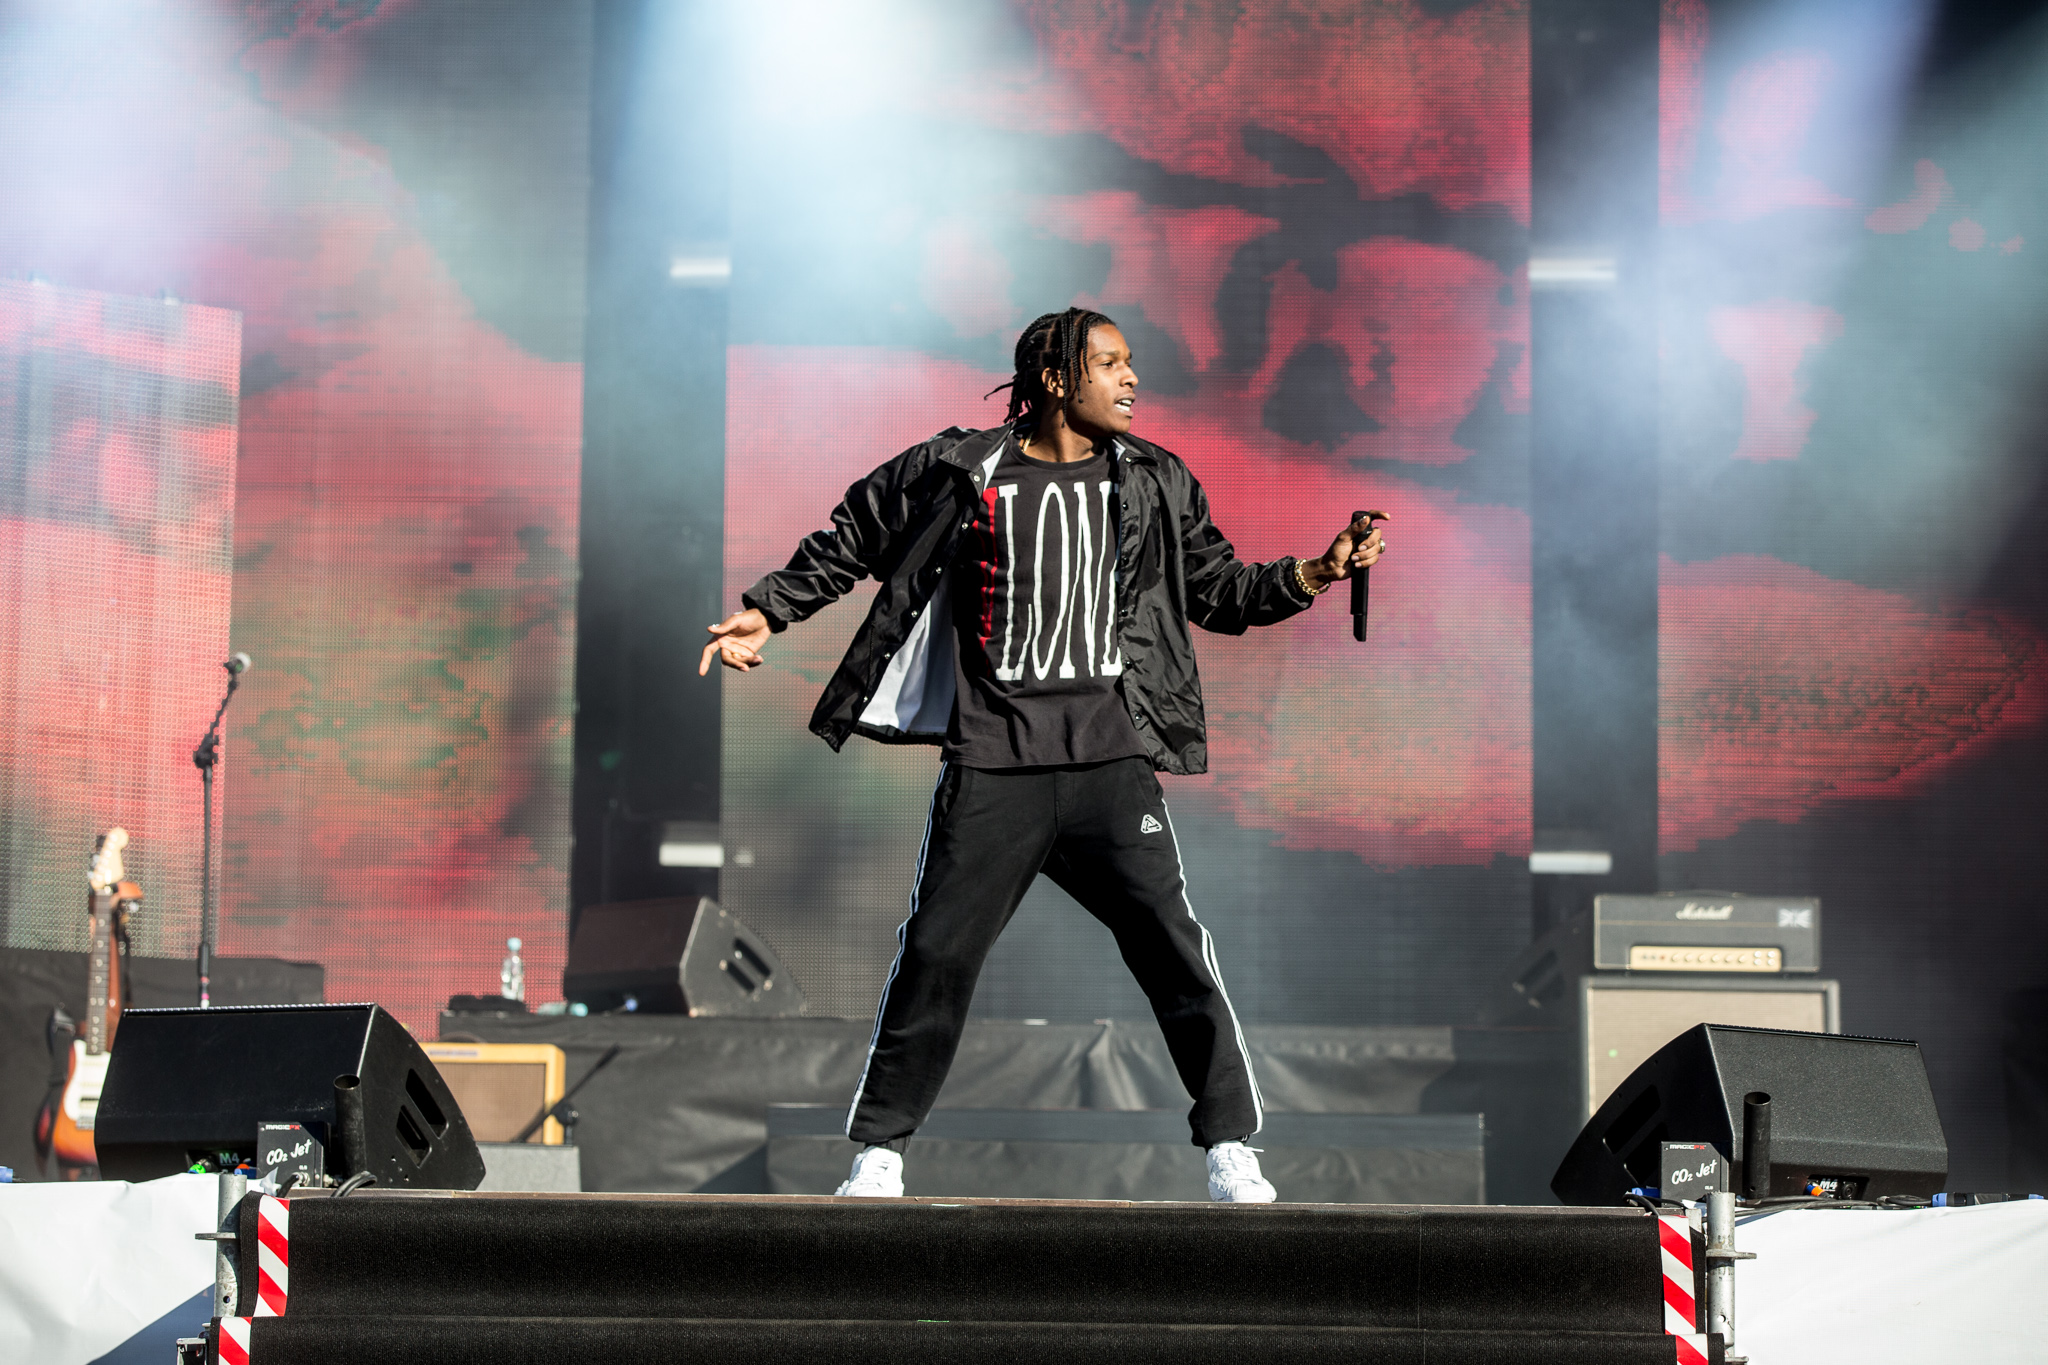 © Open'er Festival - A$AP Rocky performs on the first day of Open'er Festival, Gdynia, Poland_01